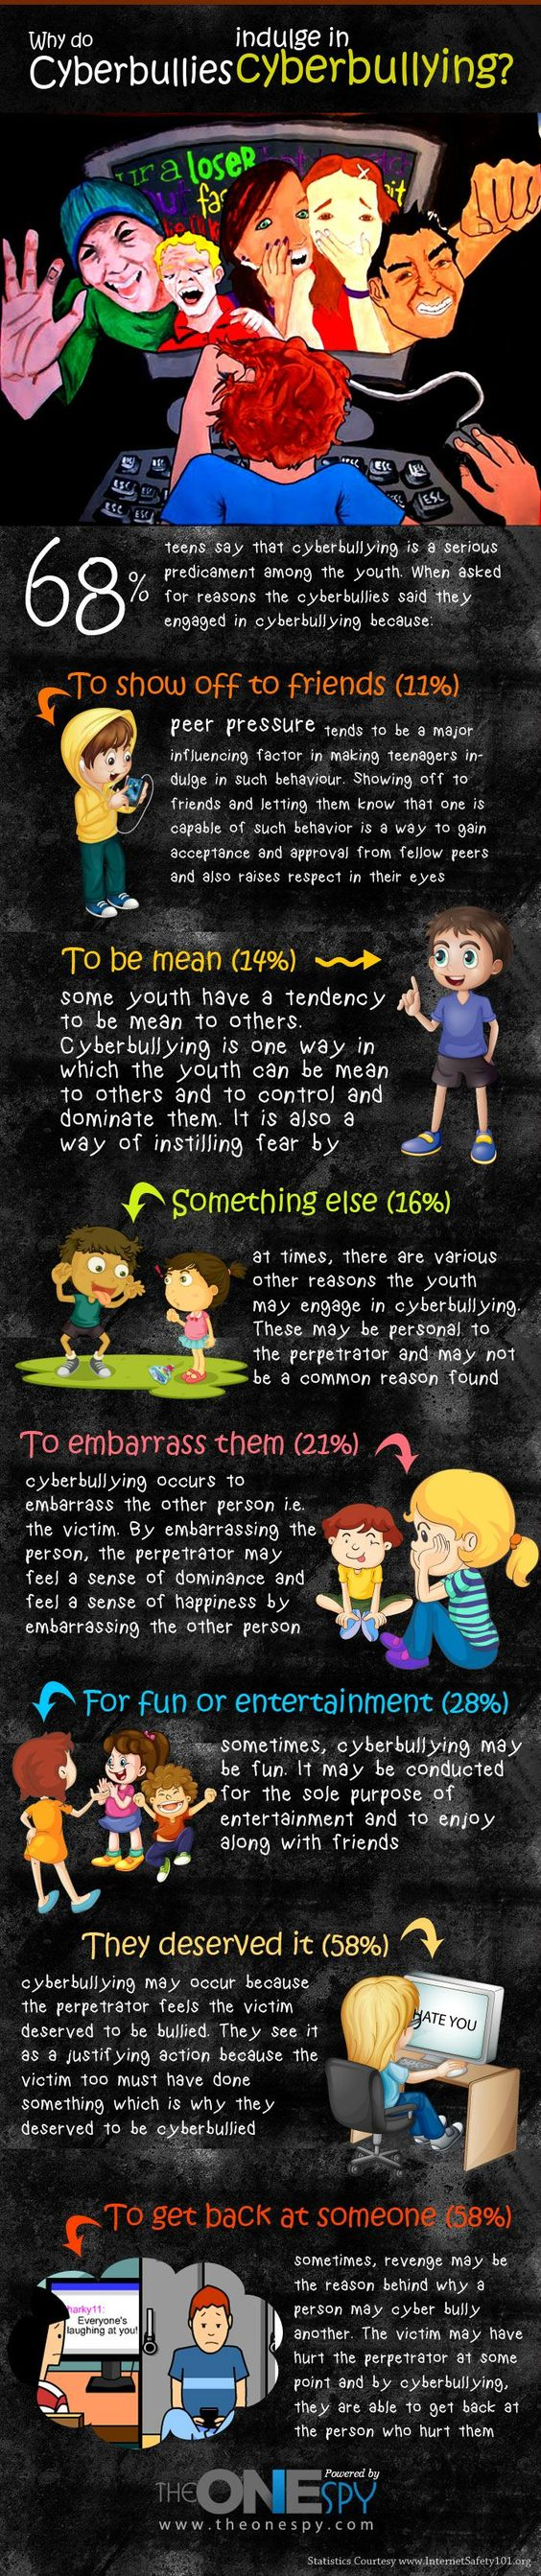 Stories and Reasons of CyberBullying by CyberBullies with Facts and Statistics: